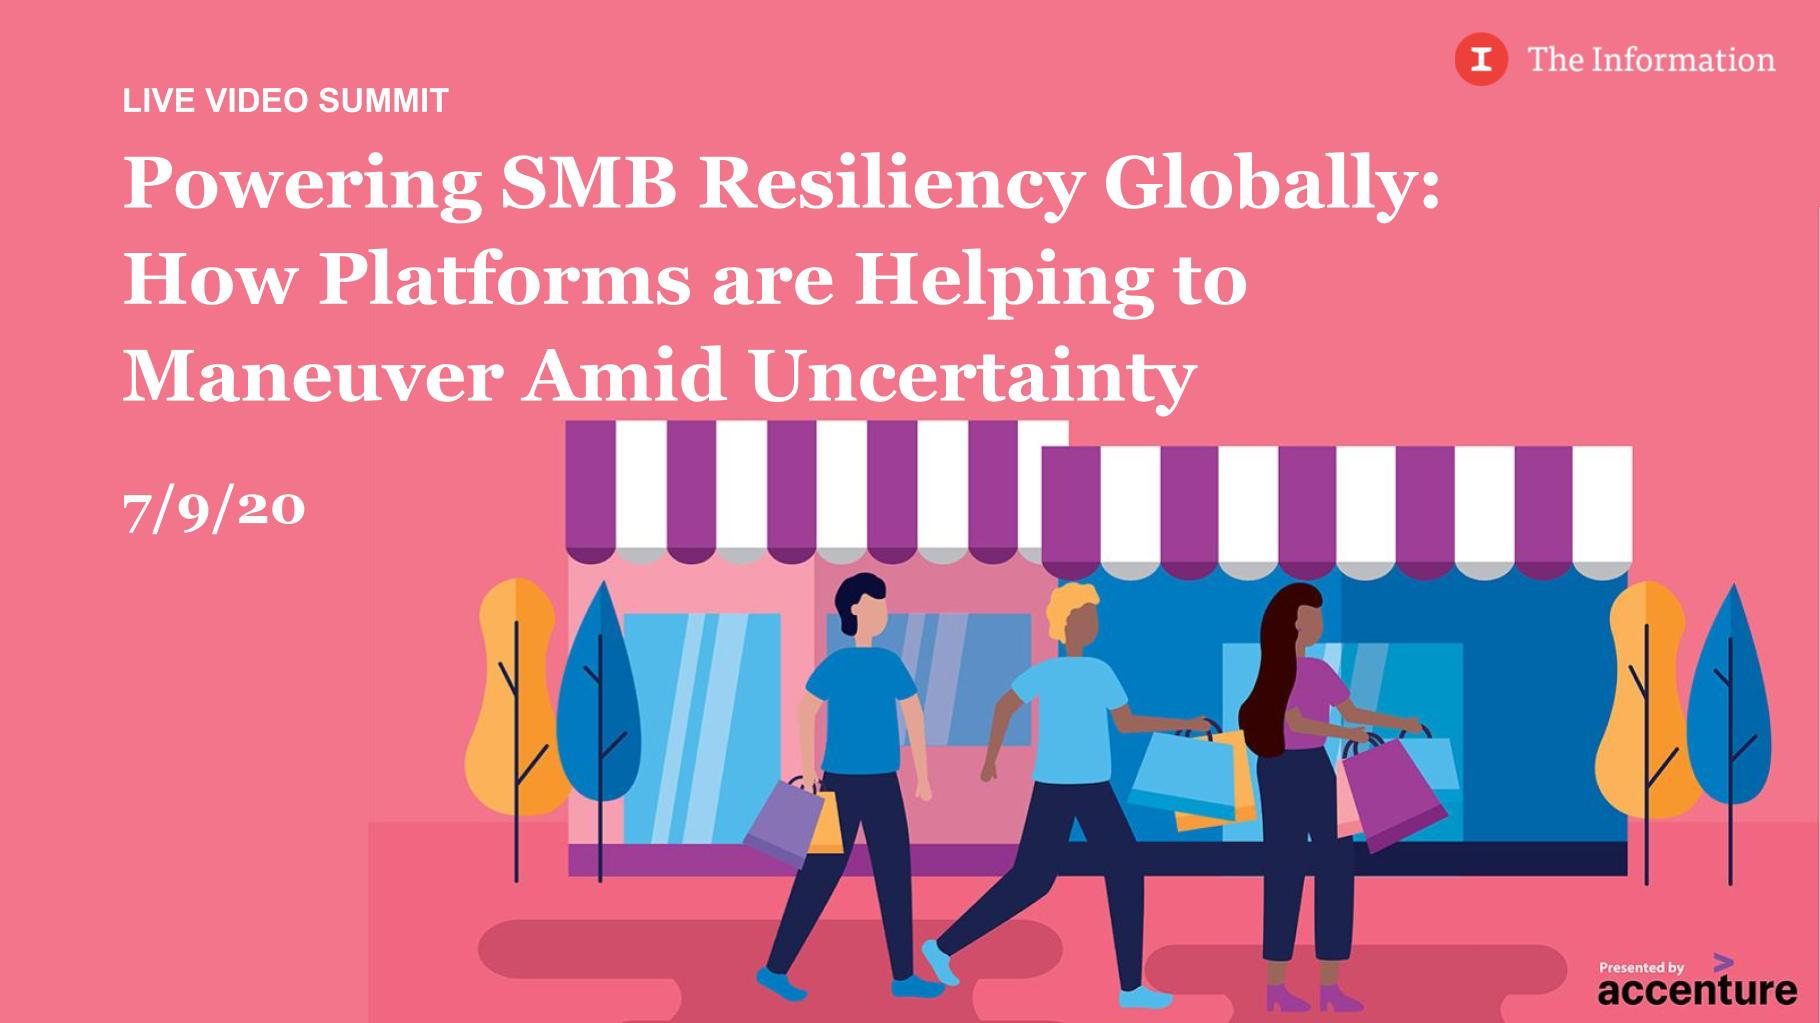 Powering SMB Resiliency Globally: How Platforms are Helping to Maneuver Amid Uncertainty